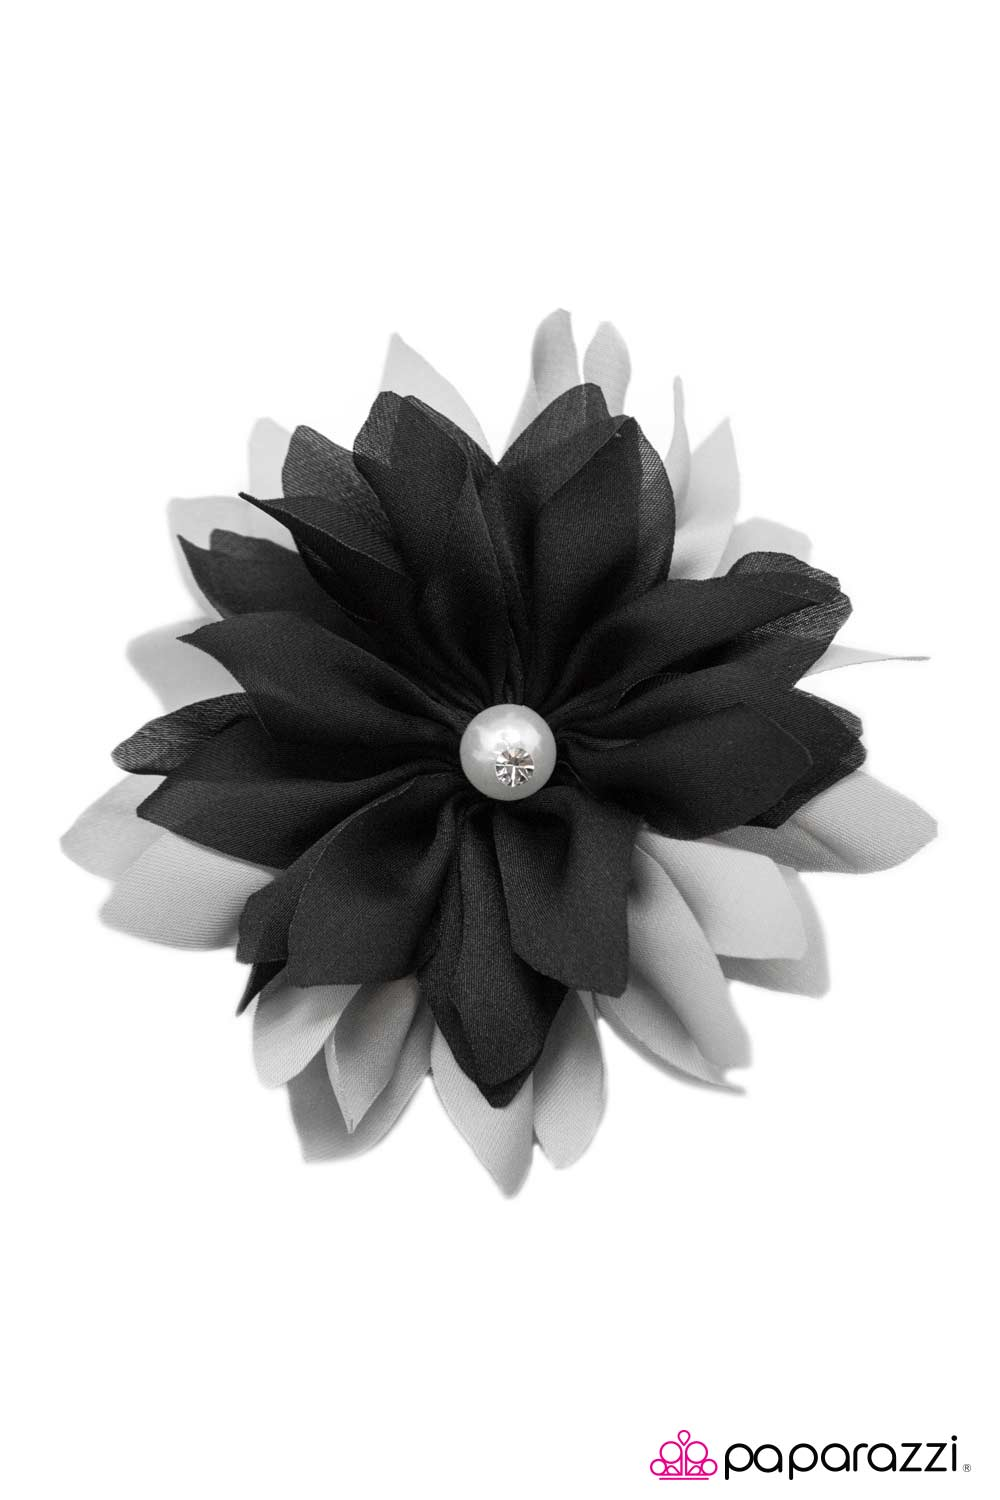 New Yorks Finest Hair Clip - Paparazzi Accessories